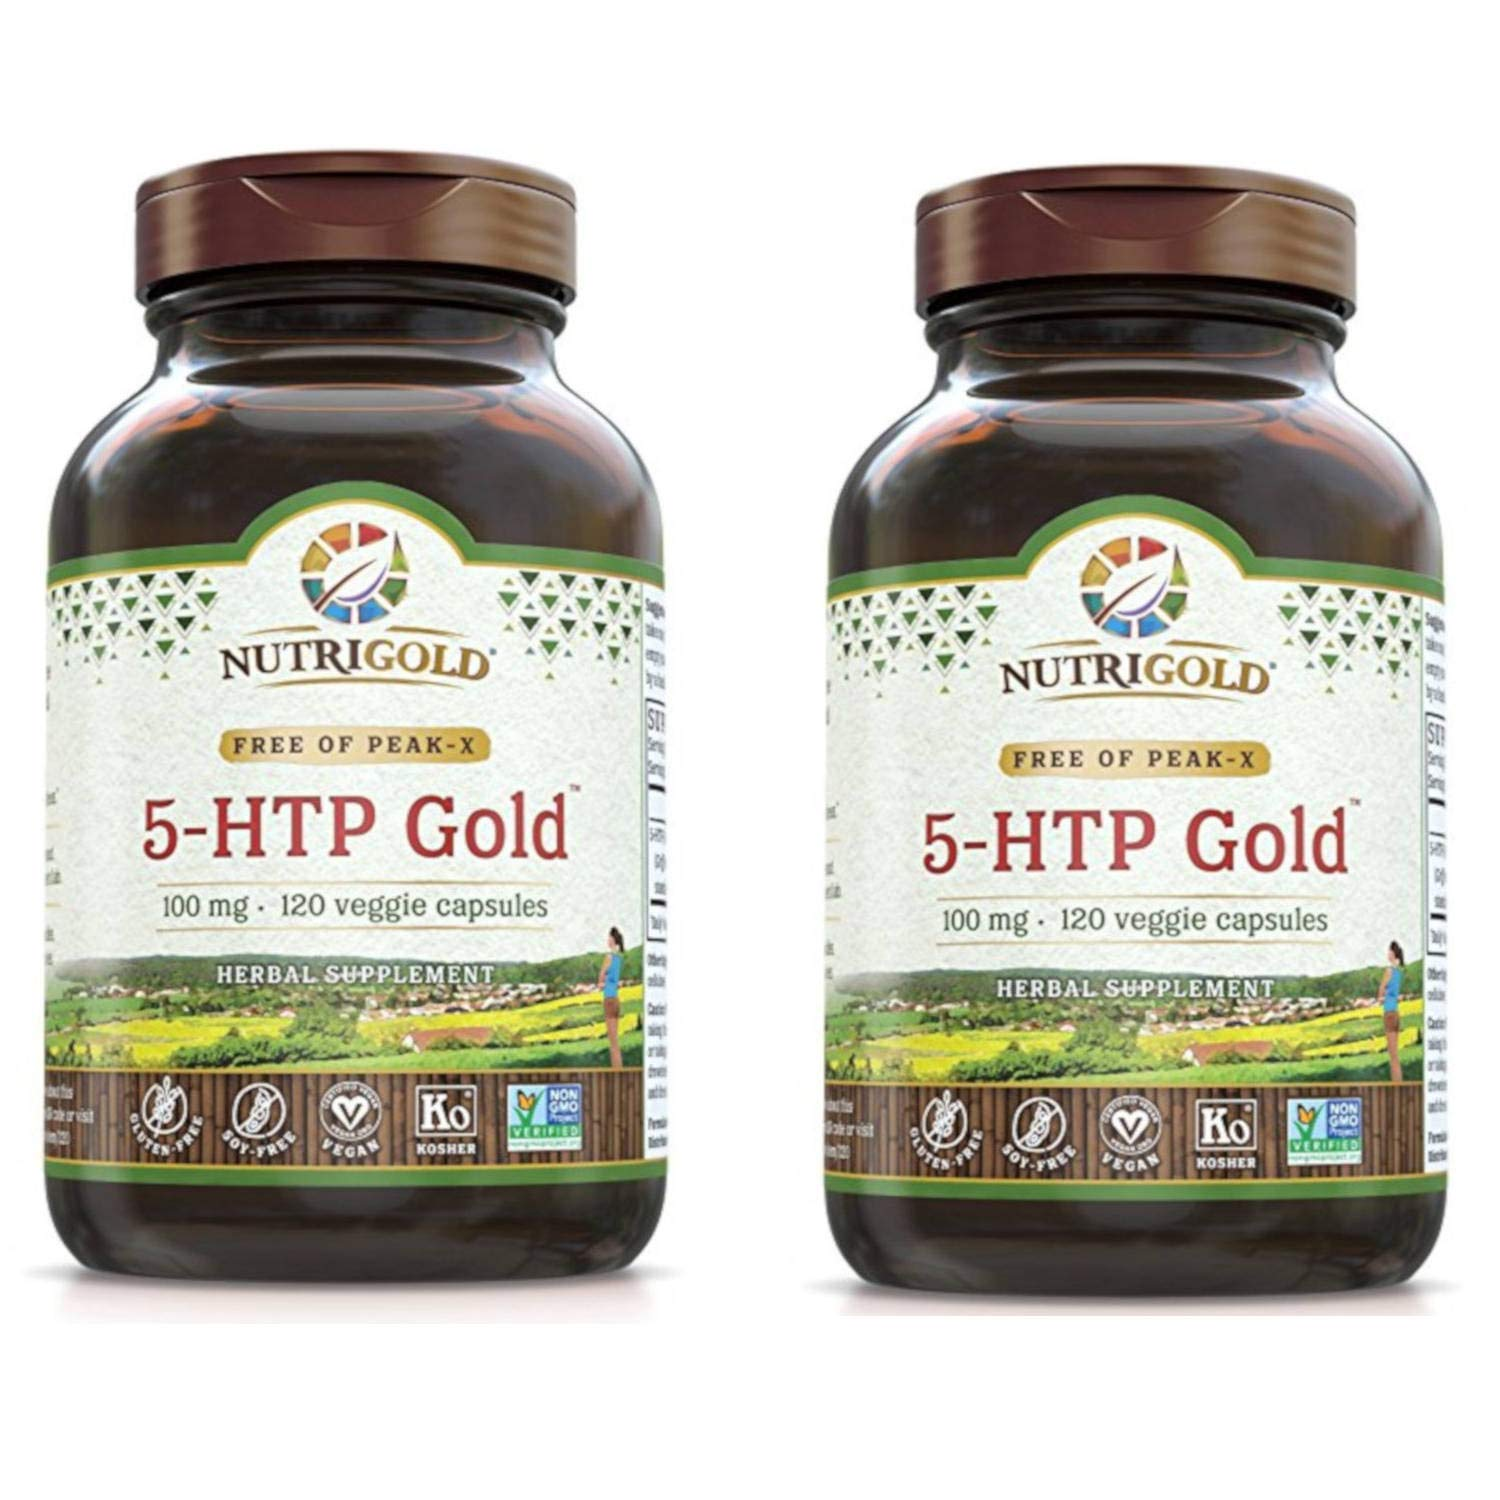 Nutrigold 5-HTP Gold is Guaranteed Free of Peak-X and Used for Positive Mood, Appetite Management and Relaxation 100 milligrams (120 Veggie Capsules) Pack of 2